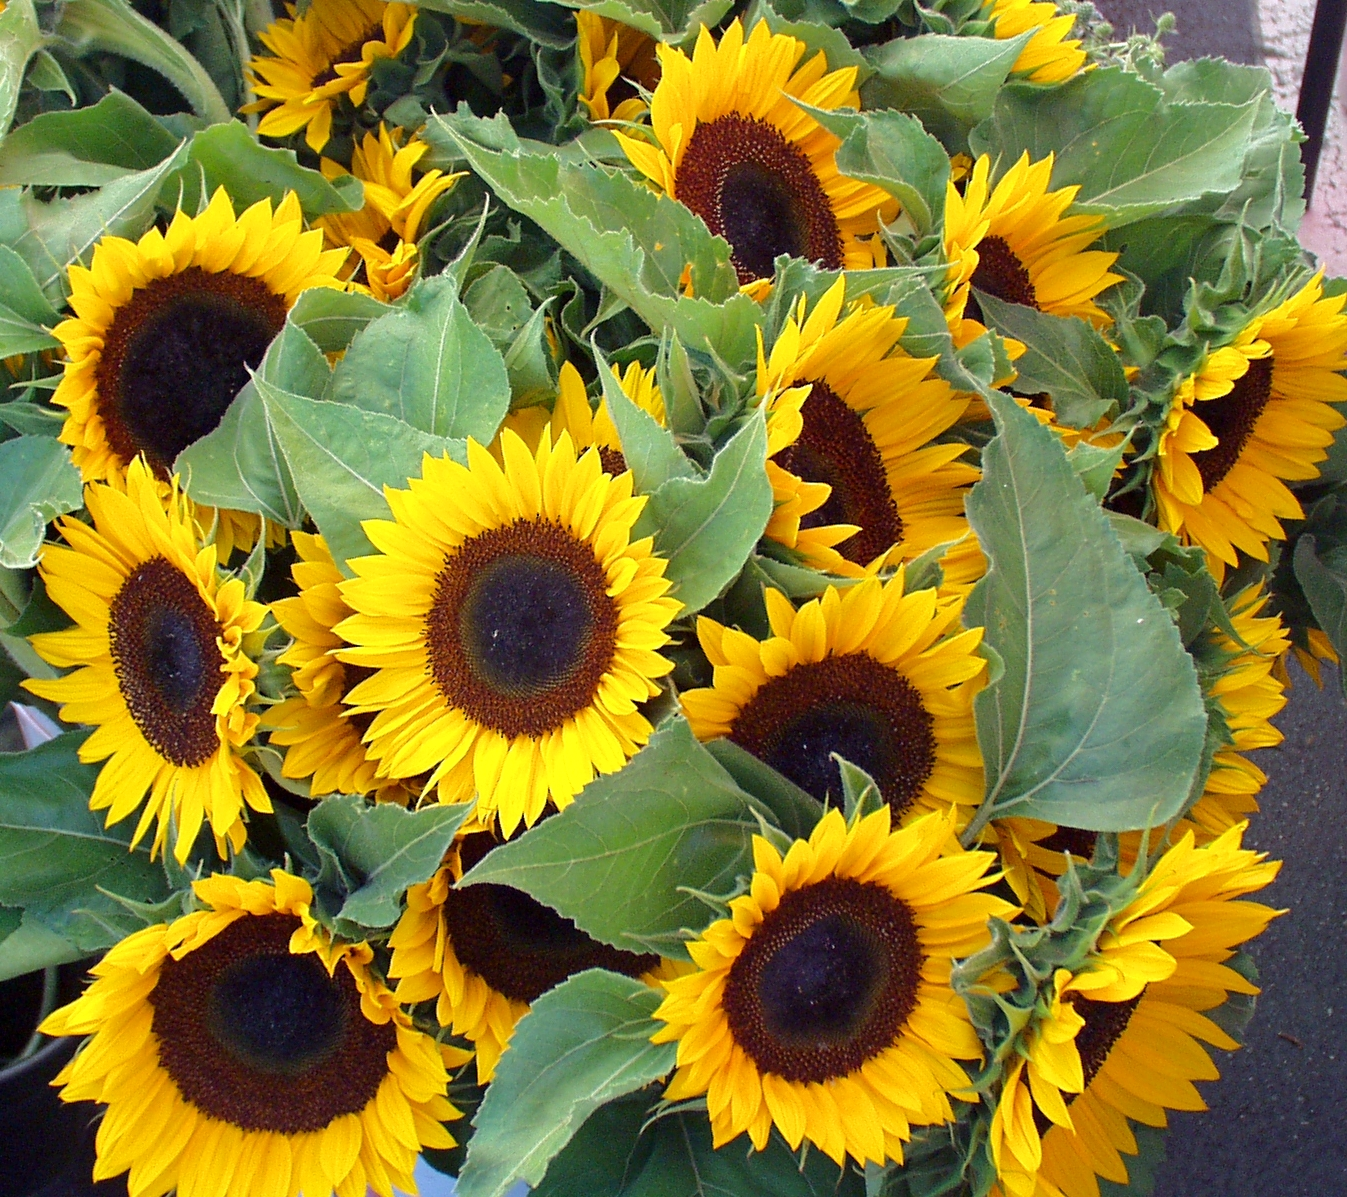 Sunflowers the would make Vincent Van Gogh proud, from Ia's Garden. Photo copyright 2009 by Zachary D. Lyons.